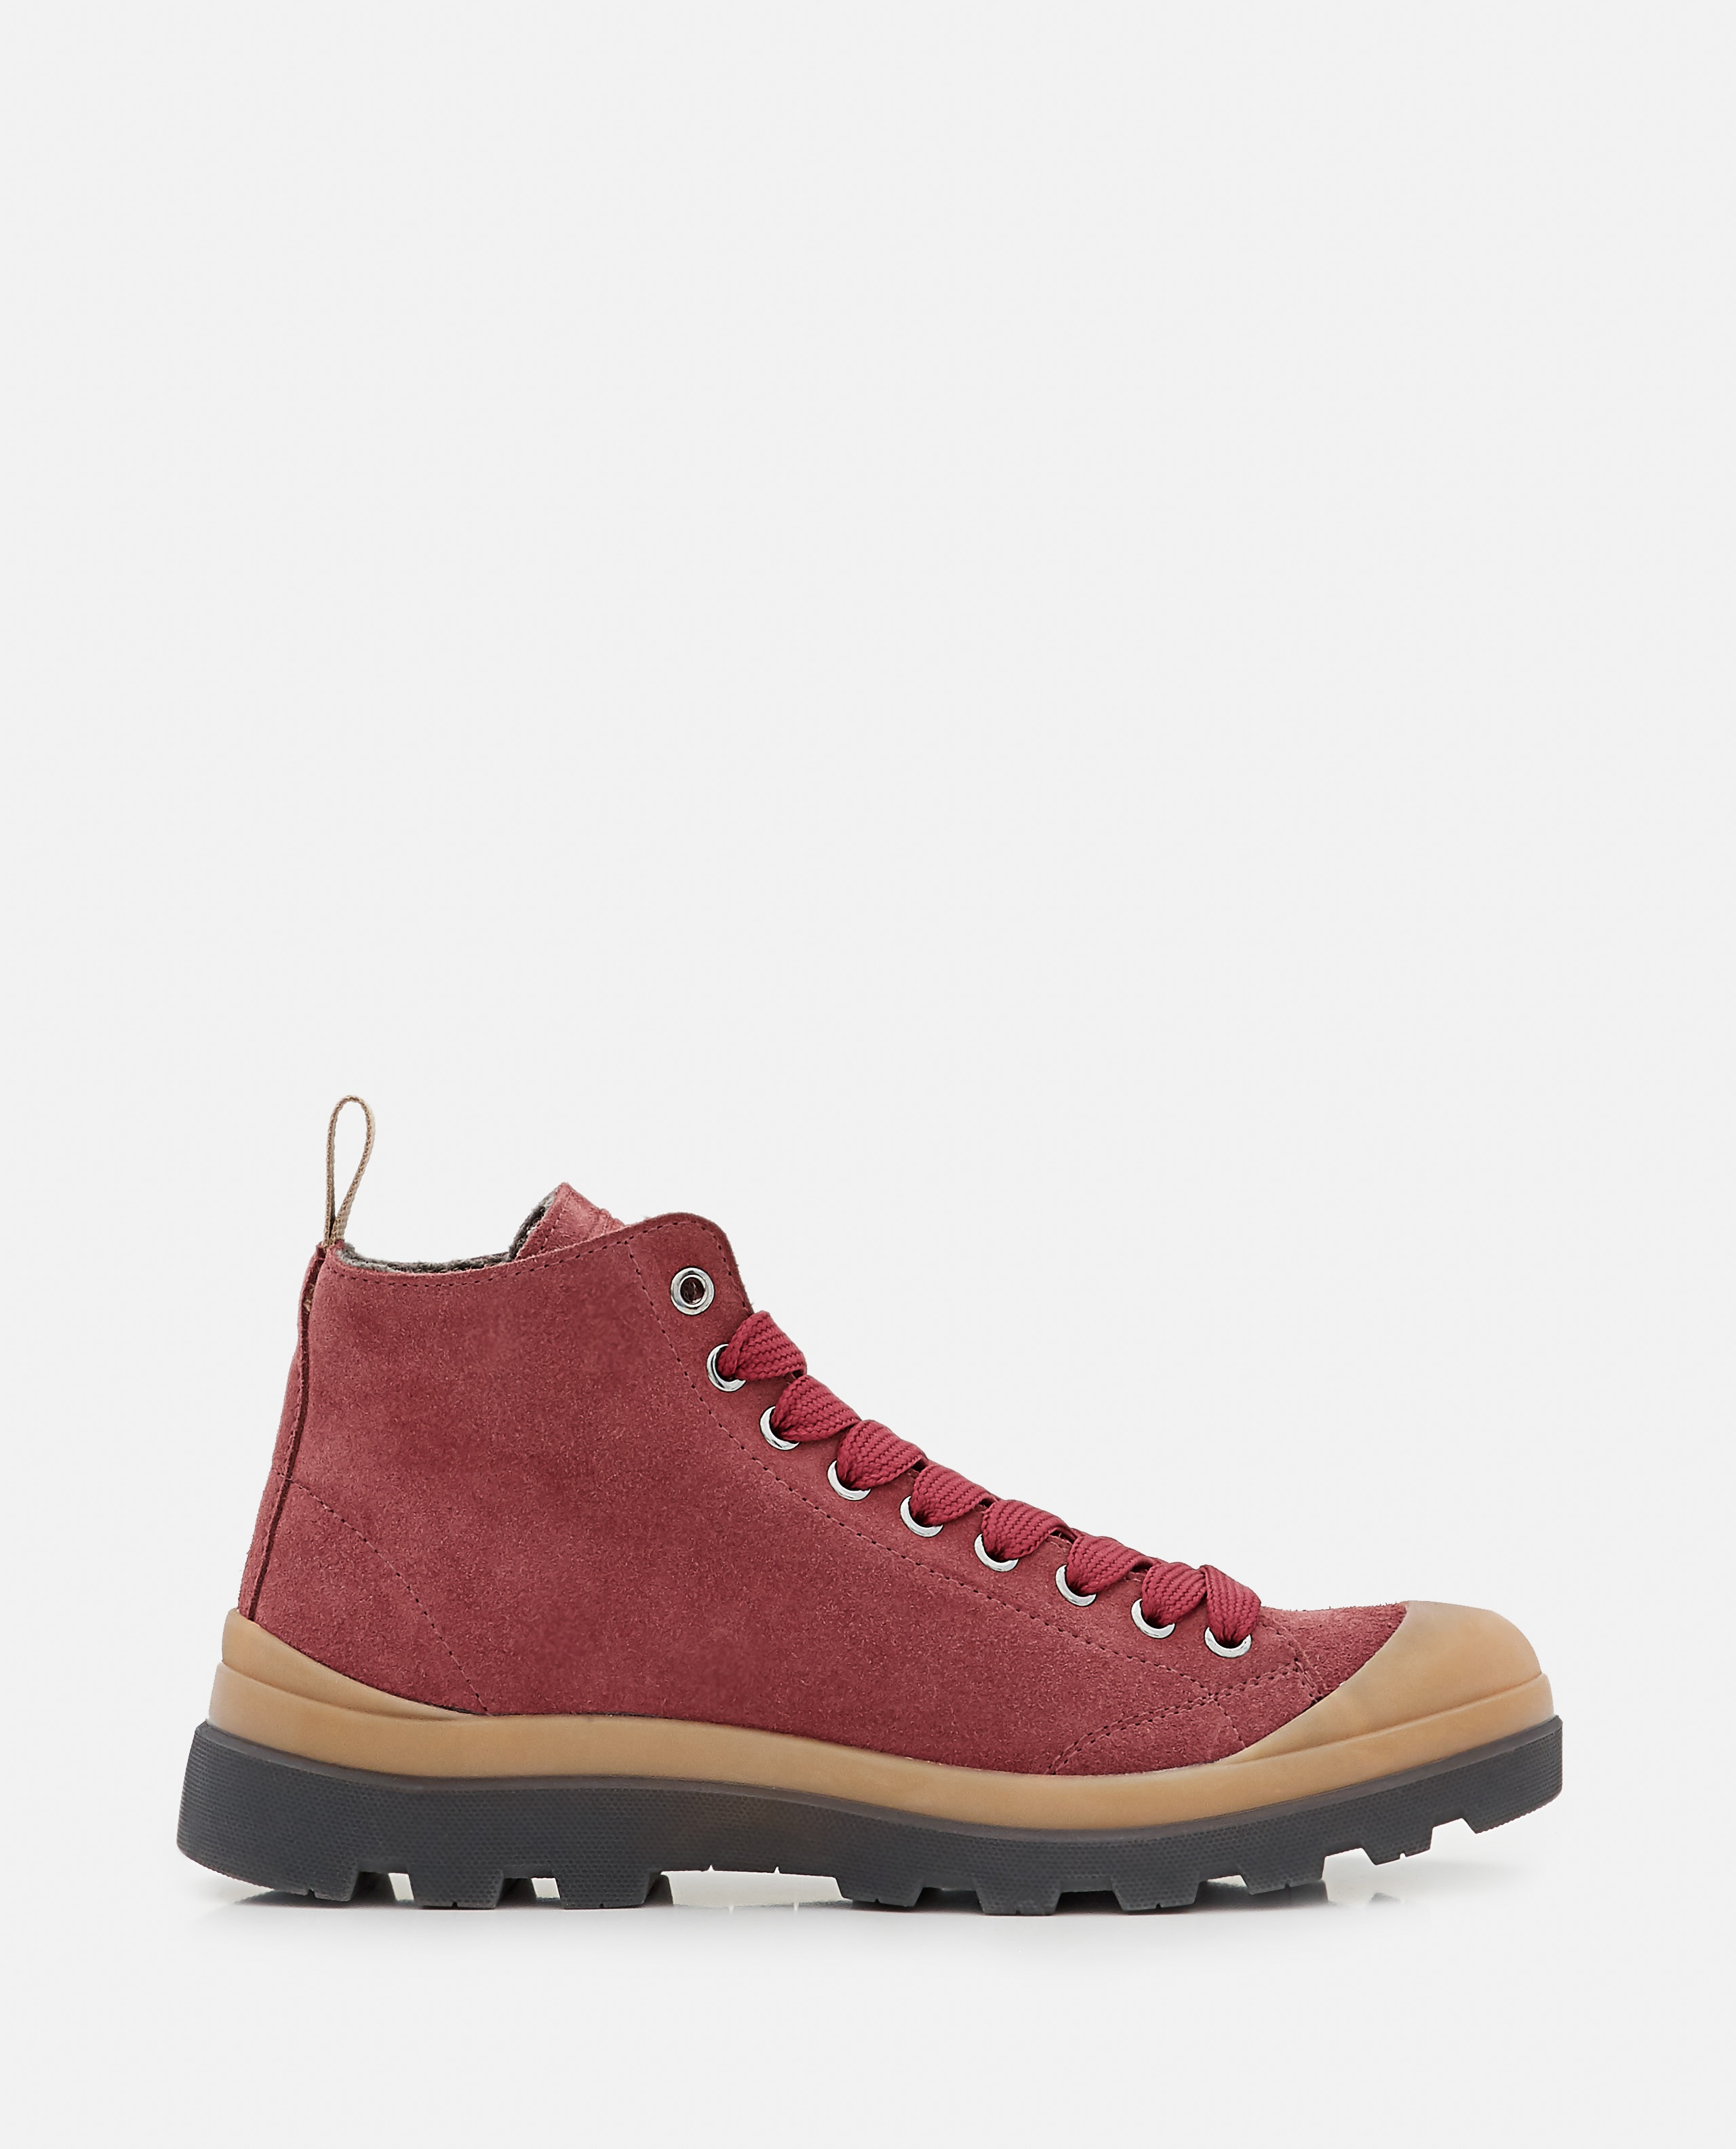 P03 SUEDE ANKLE BOOTS Women Panchic 000350250050963 1